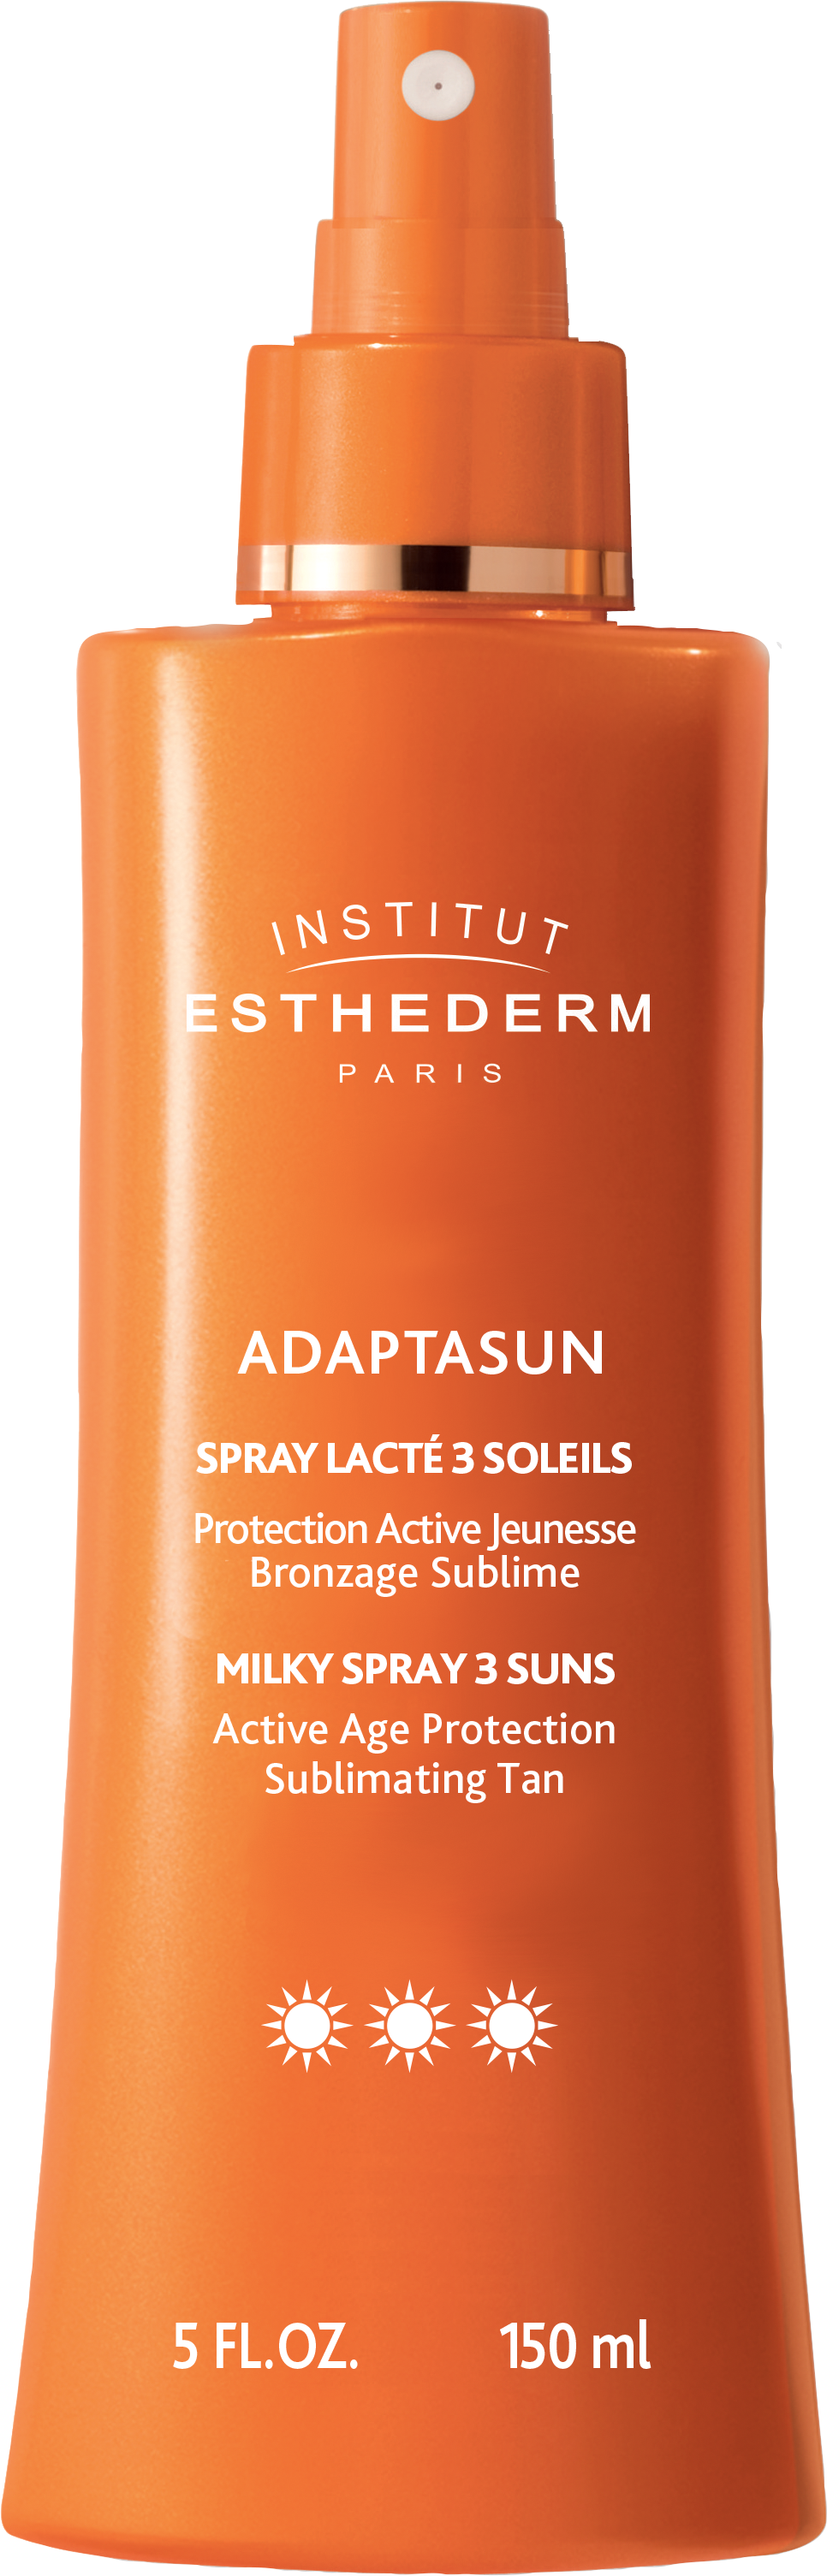 Adaptasun Milky Spray 3 Suns